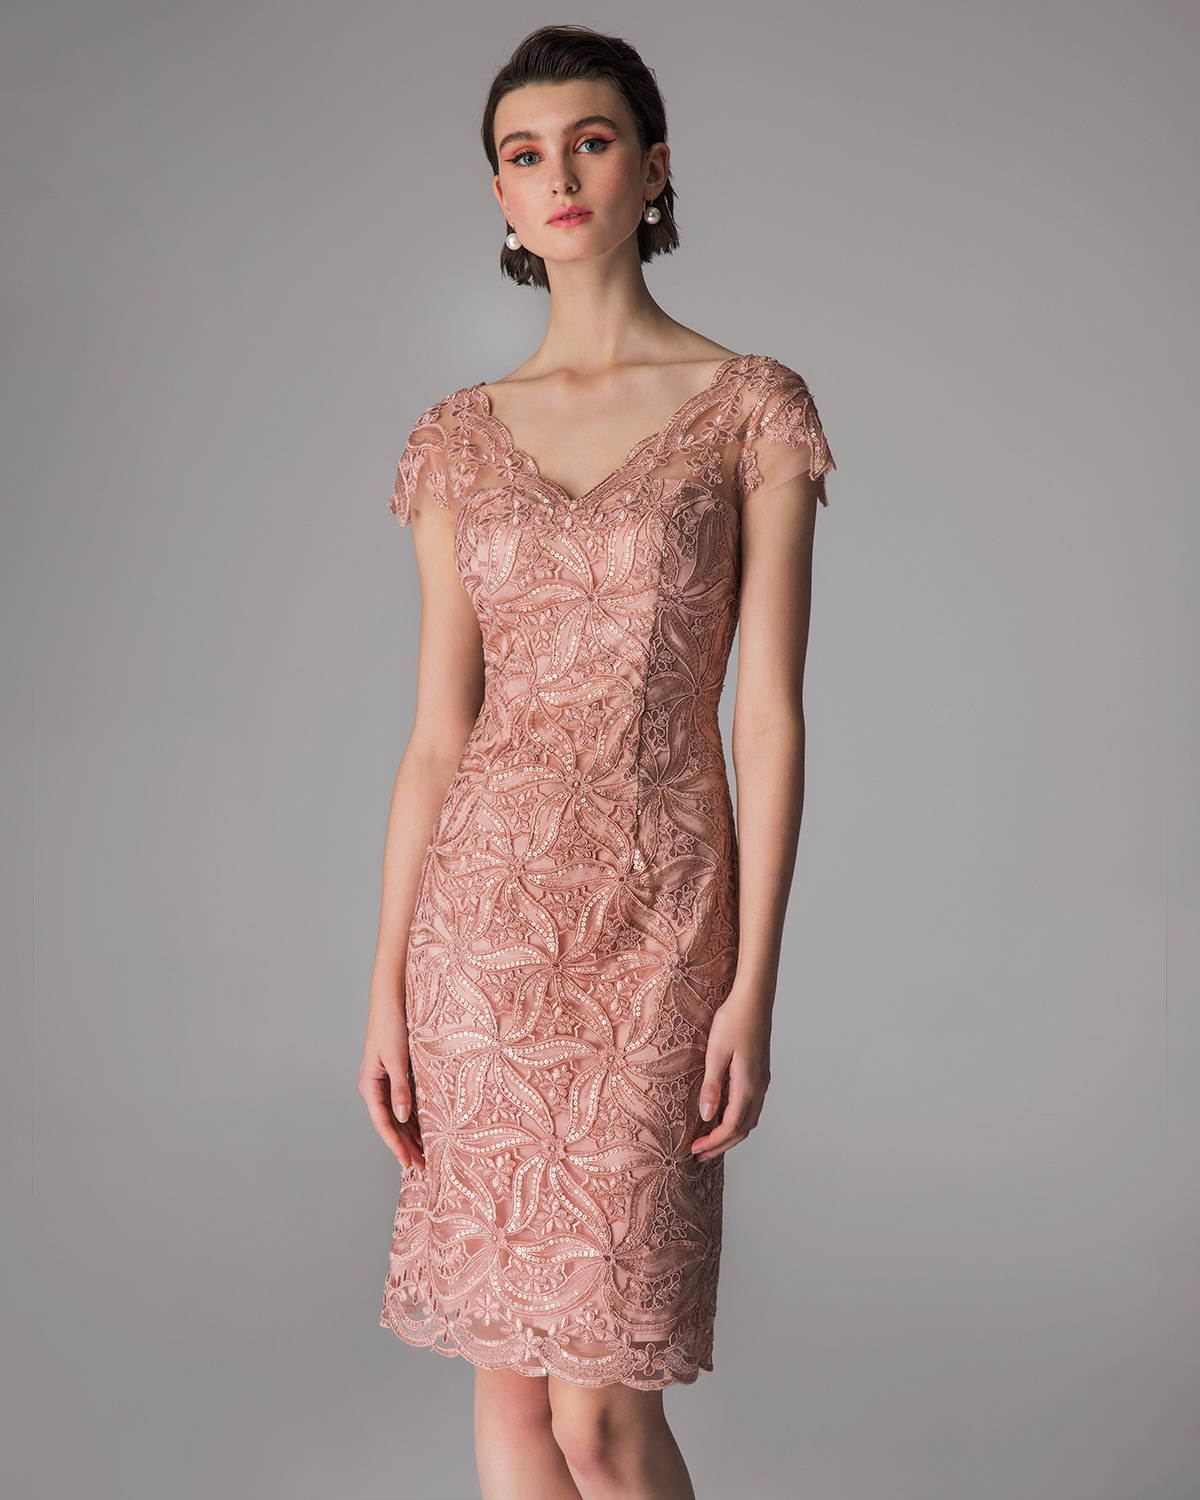 Classic Dresses / Short evening lace dress with short sleeves